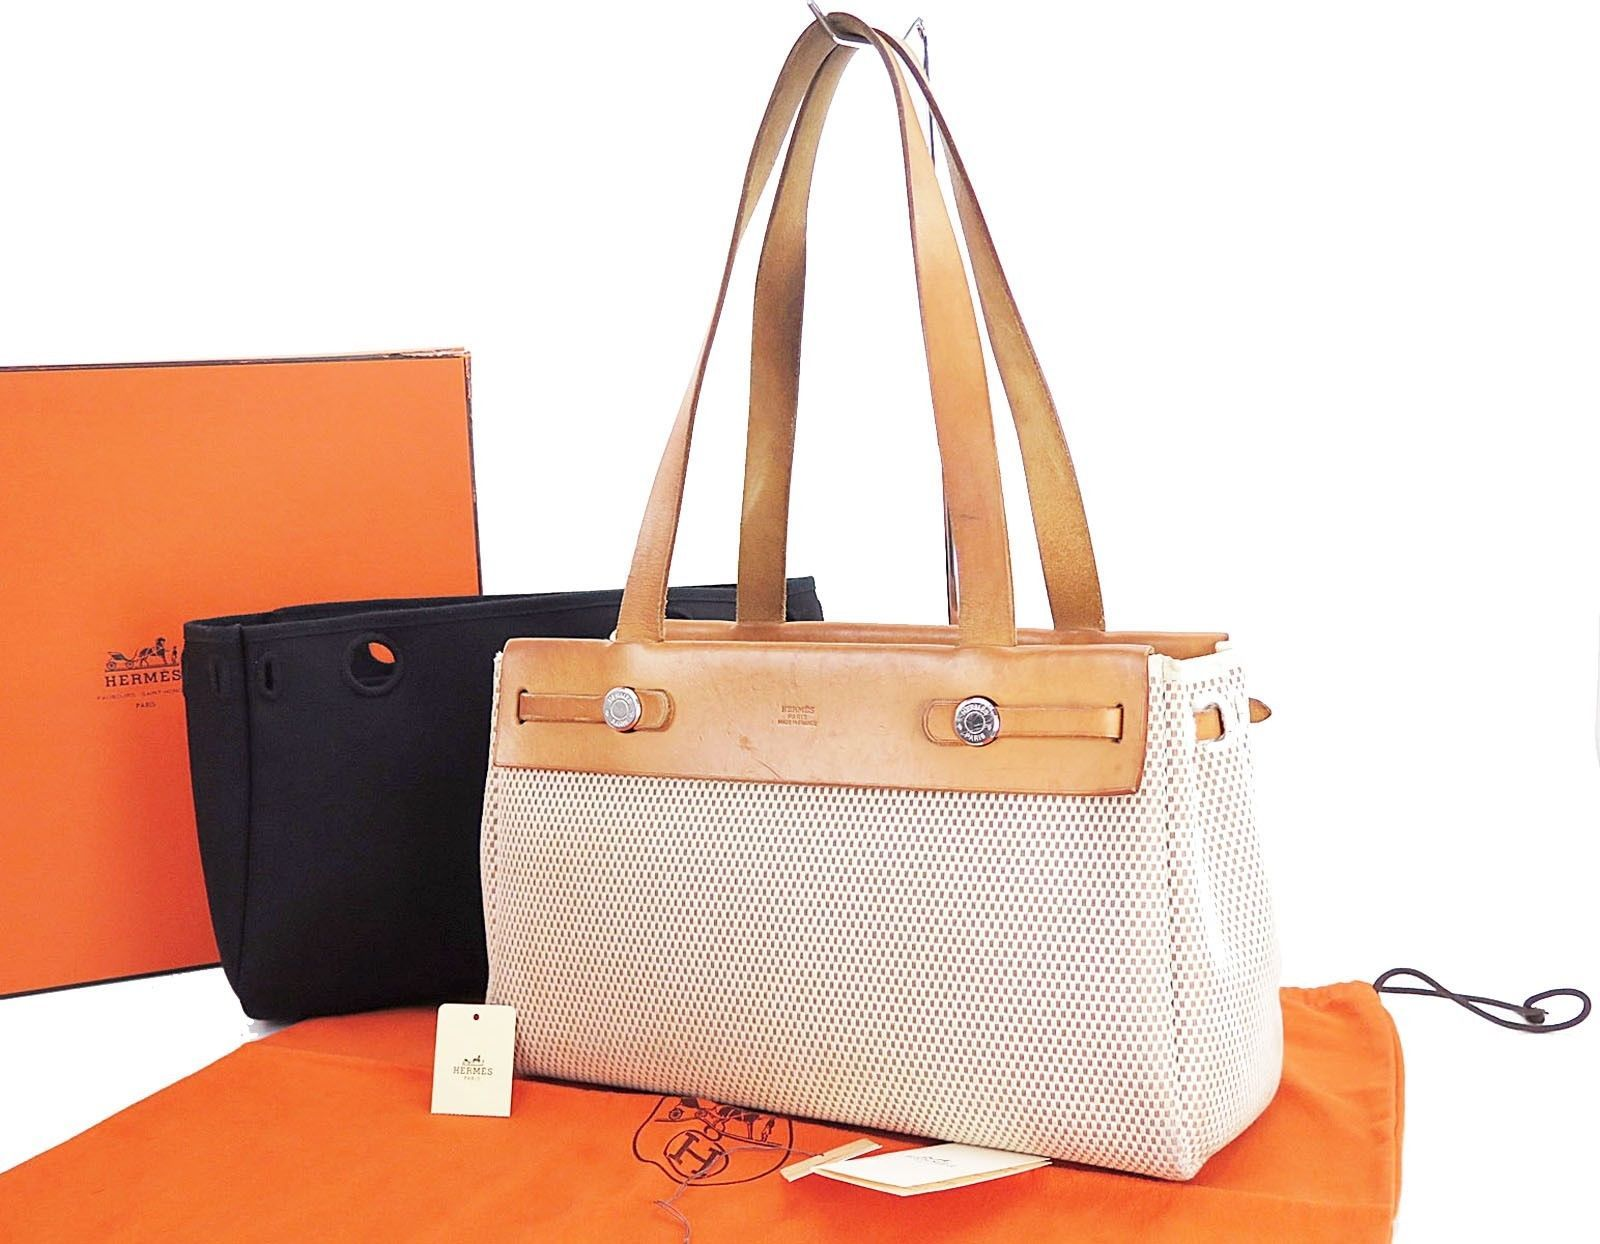 082dd0def0b Auth HERMES Her Bag Cabas PM Beige Black Canvas Shoulder Tote Bag Purse   26117